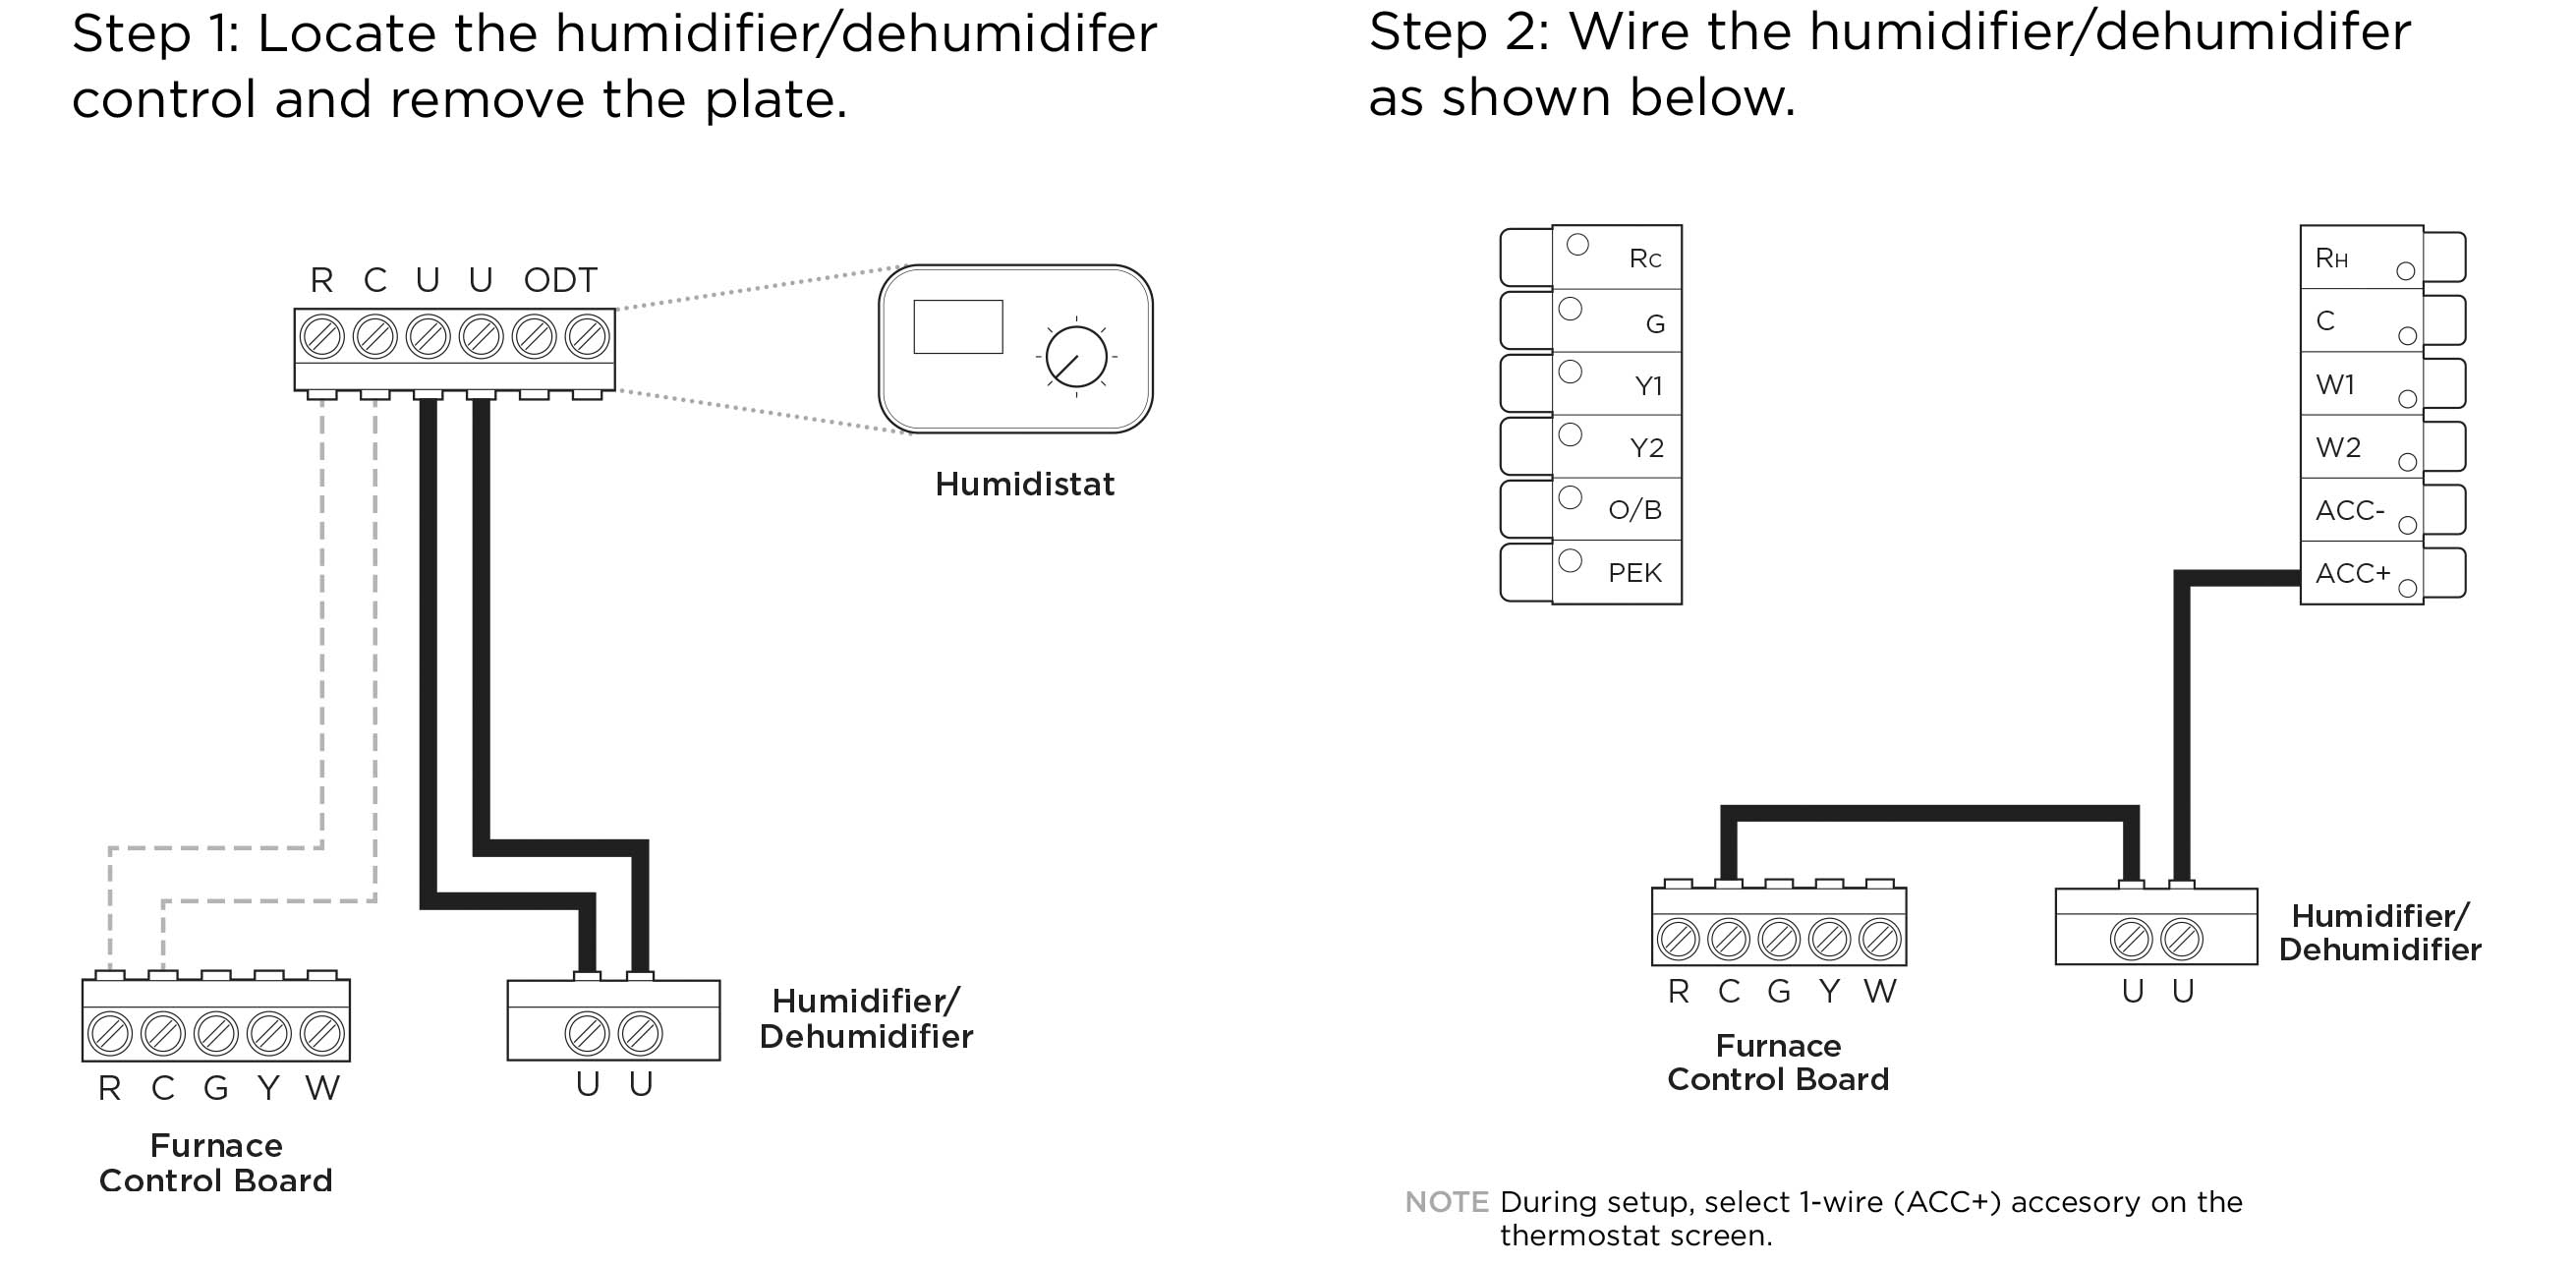 Humidifier To Furnace Wiring Diagram | Wiring Diagram - Nest Thermostat Humidity Wiring Diagram